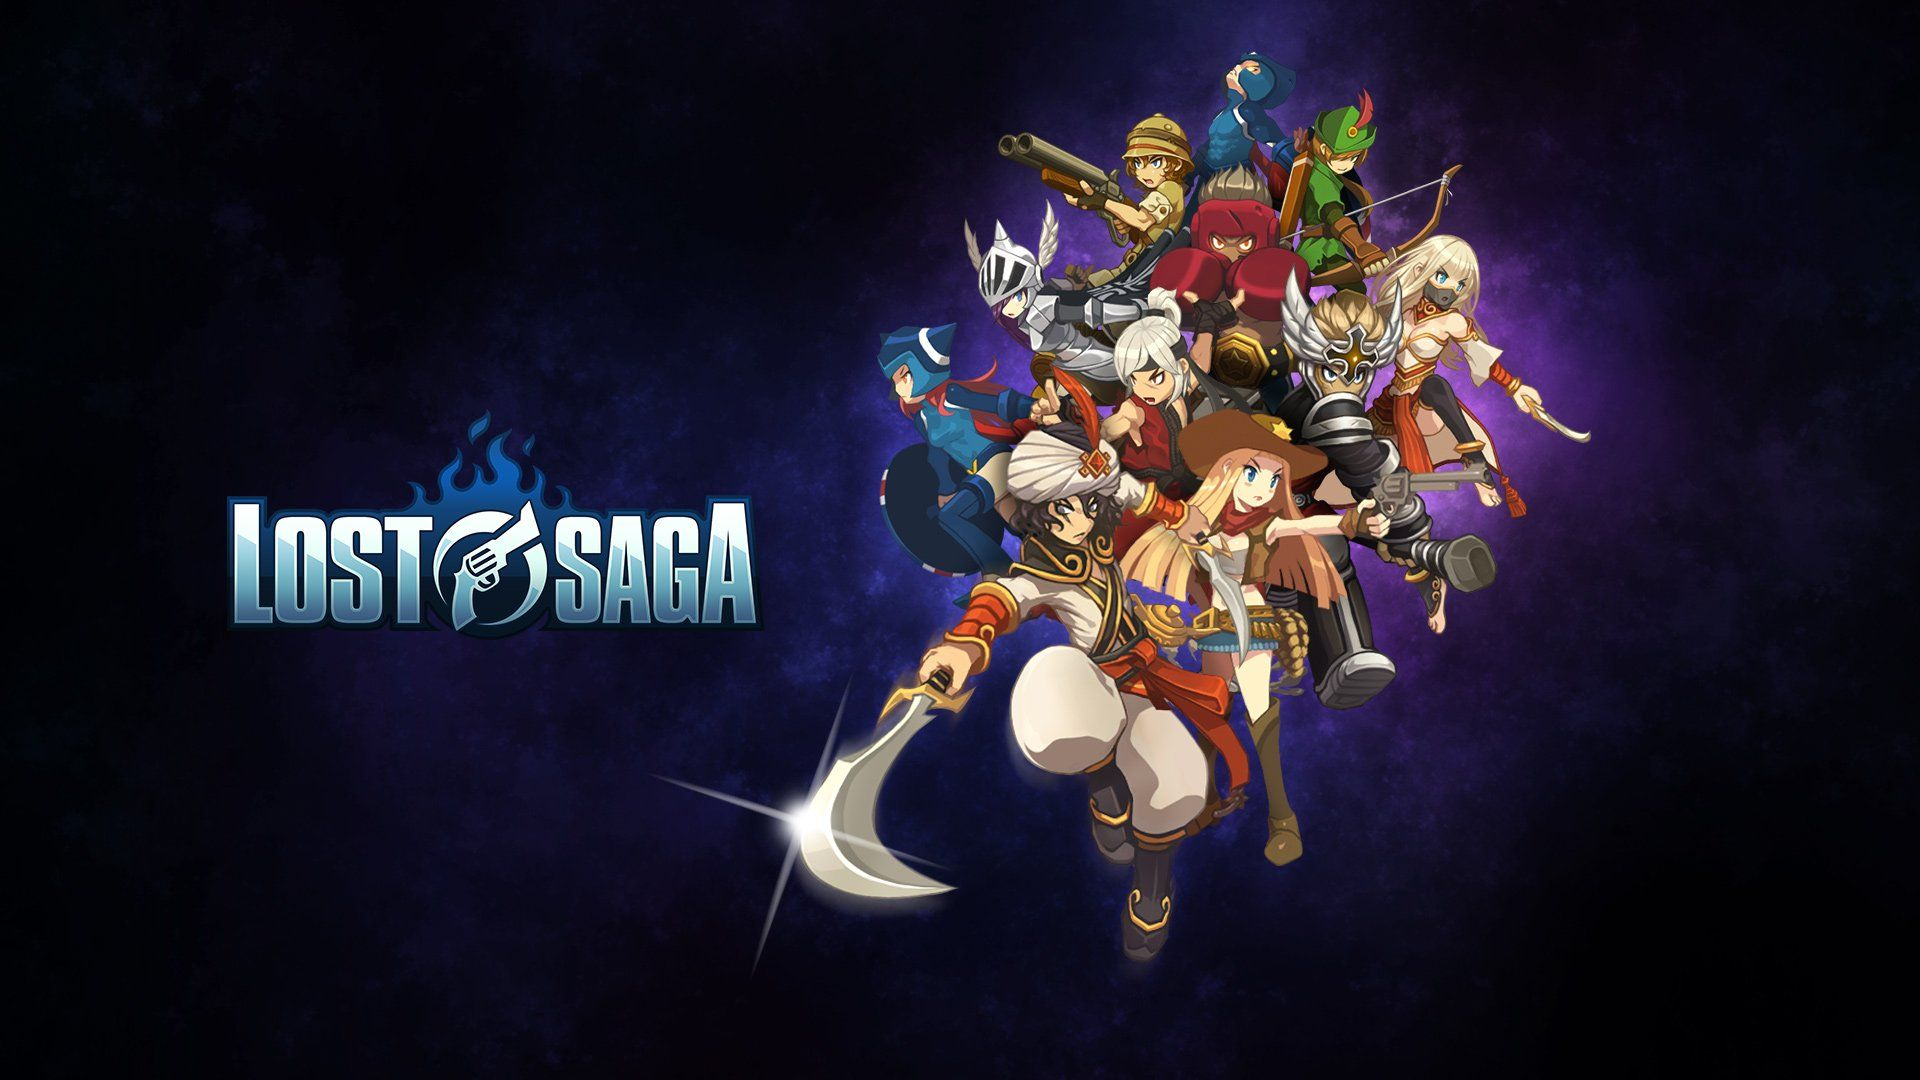 LOST SAGA mmo fantasy anime fighting 1losts dungeon action rpg